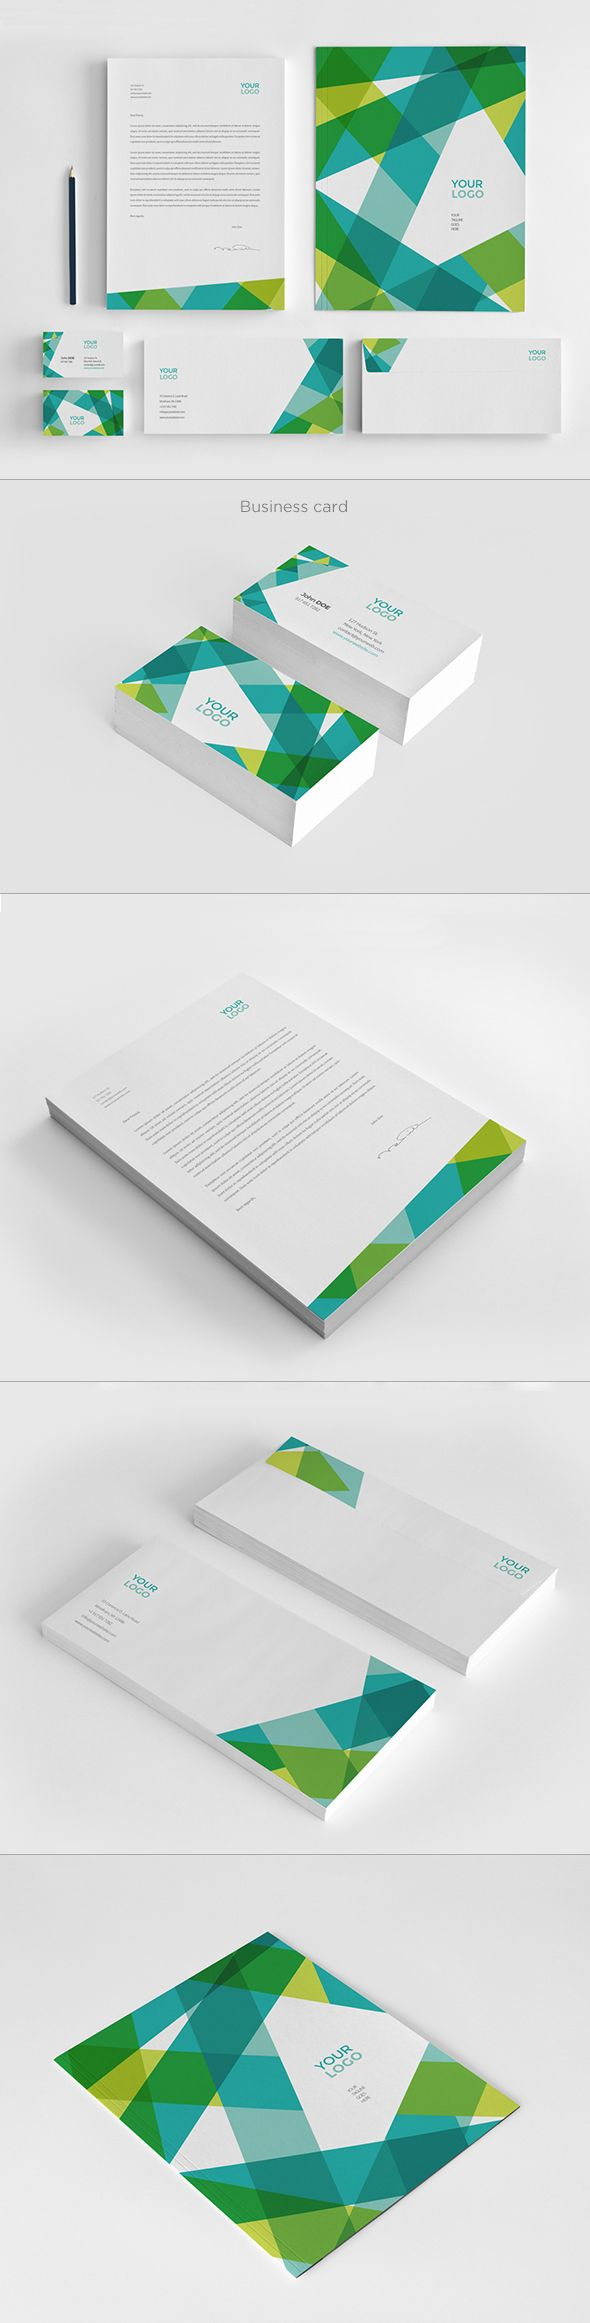 Modern Green Blue Stationery by Abra Design, via Behance. A little busy, but the business cards are cool